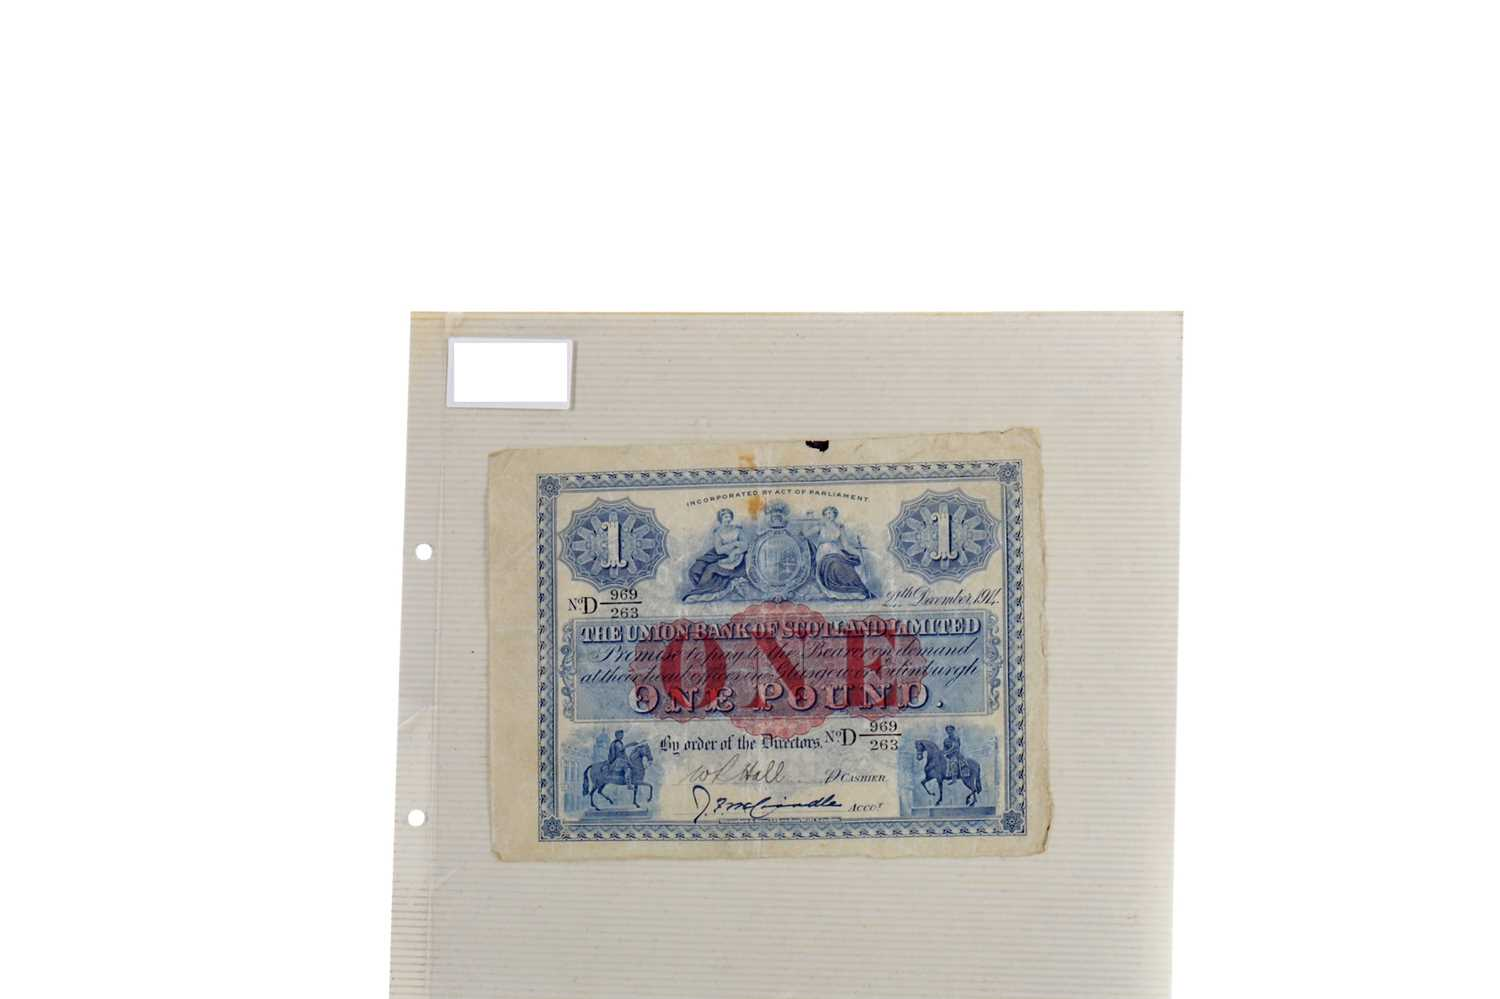 Lot 18 - THE UNION BANK OF SCOTLAND ONE POUND NOTE DATED 1914